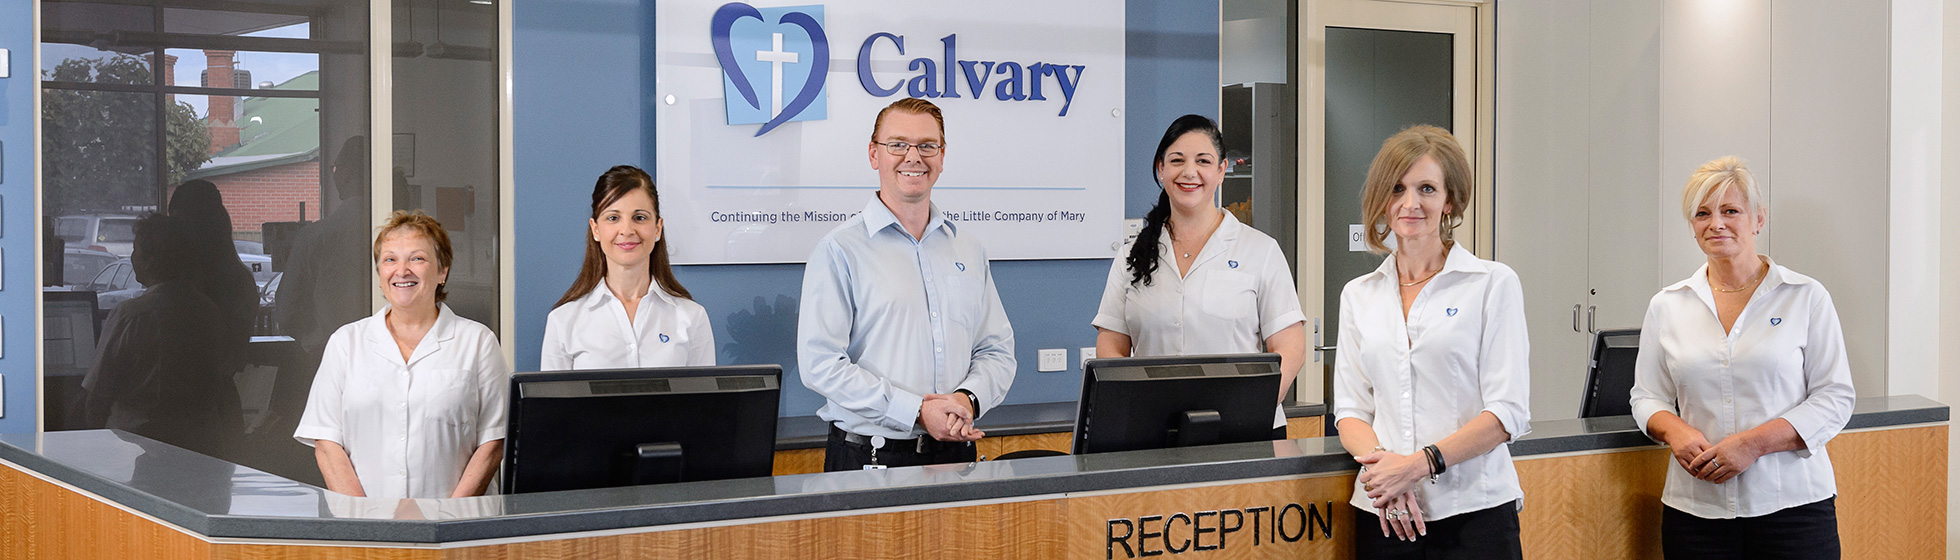 Friendly receptionists at Rehab front desk